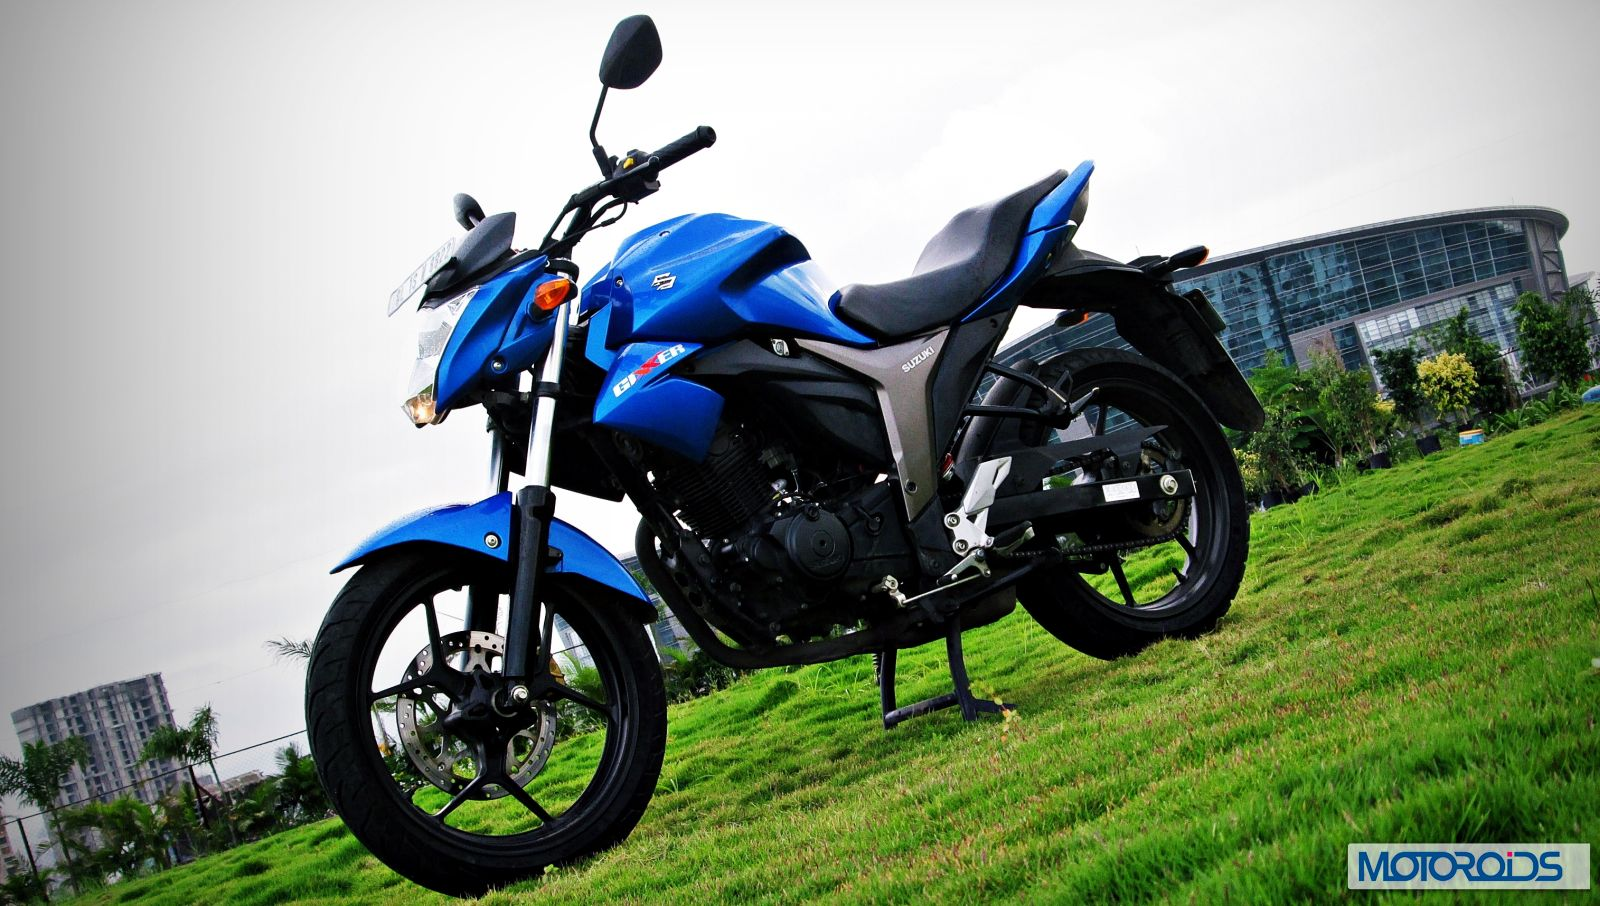 Suzuki Gixxer 155 Review : The Namesake